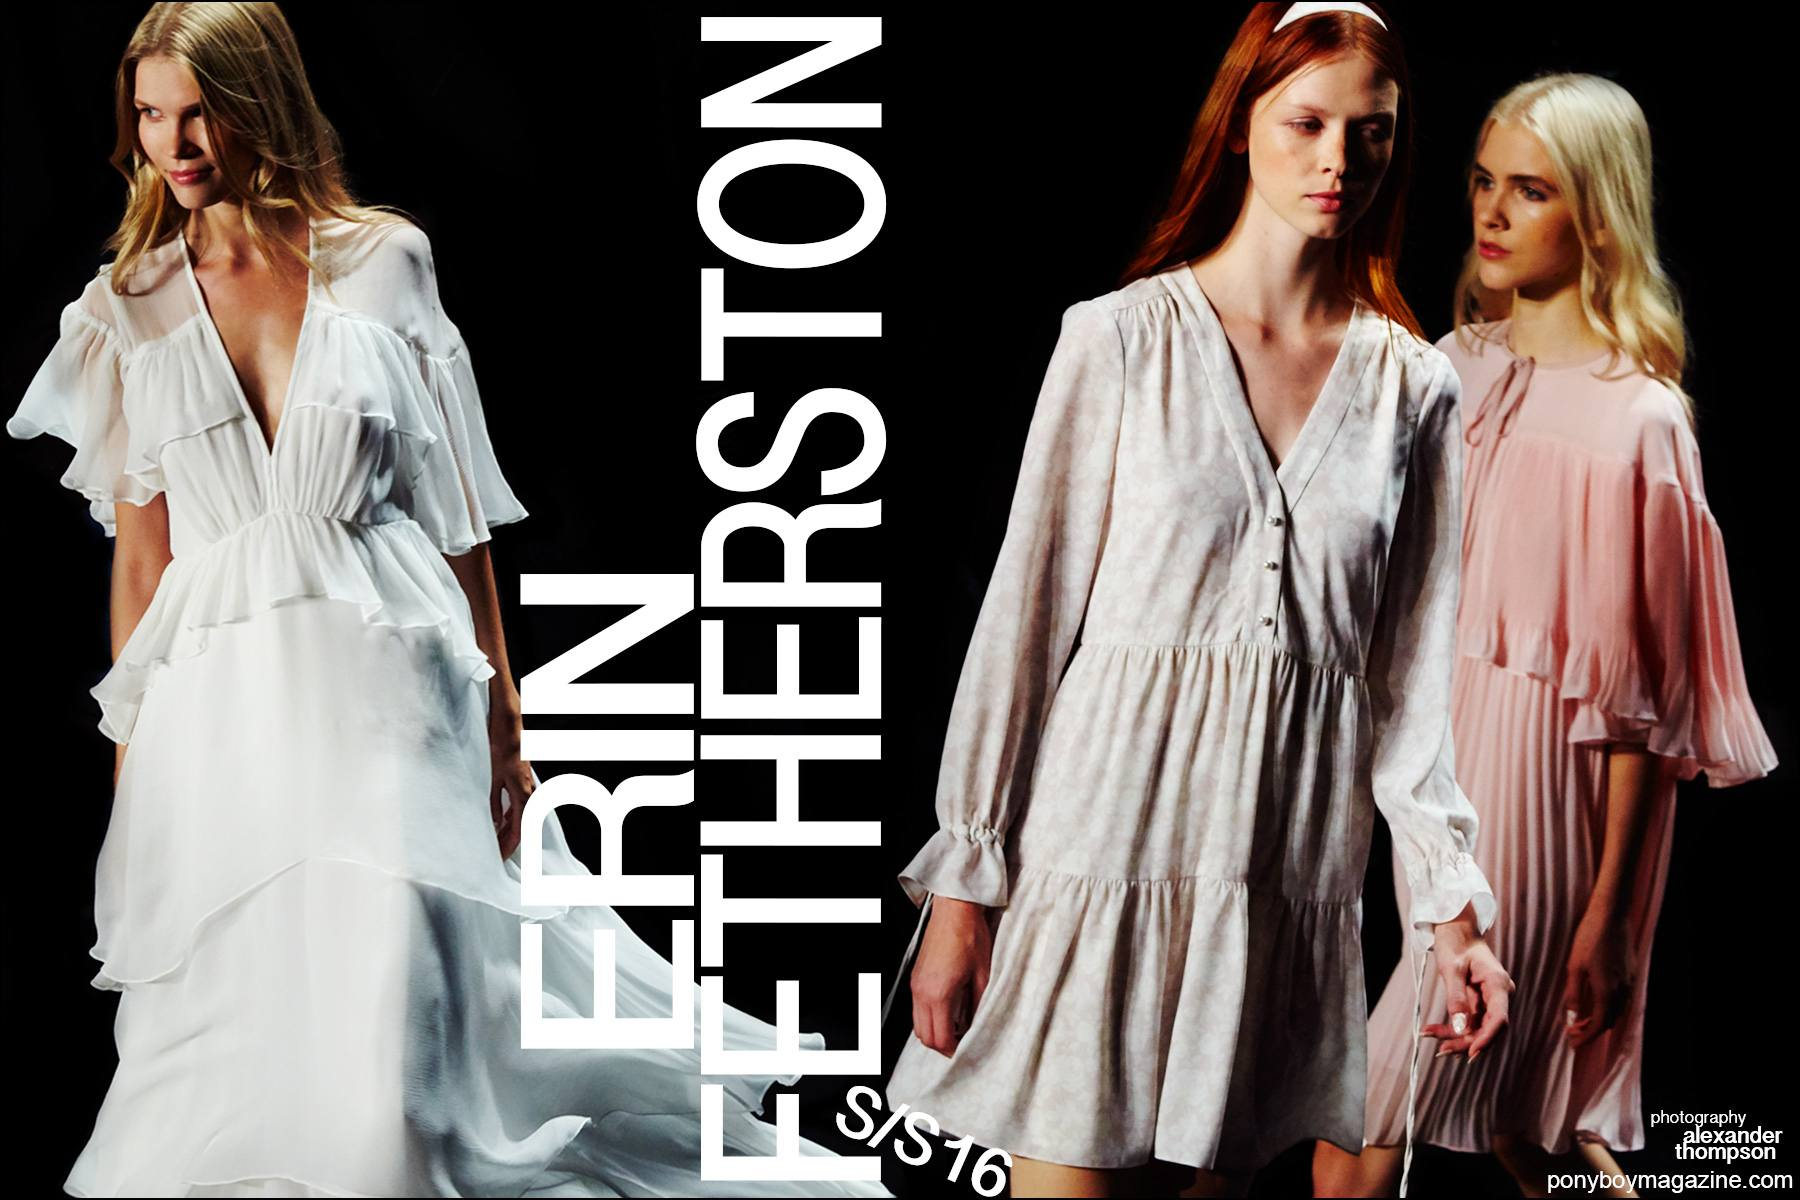 The Erin Fetherston Spring/Summer 2016 womenswear show, photographed by Alexander Thompson for Ponyboy magazine NY.